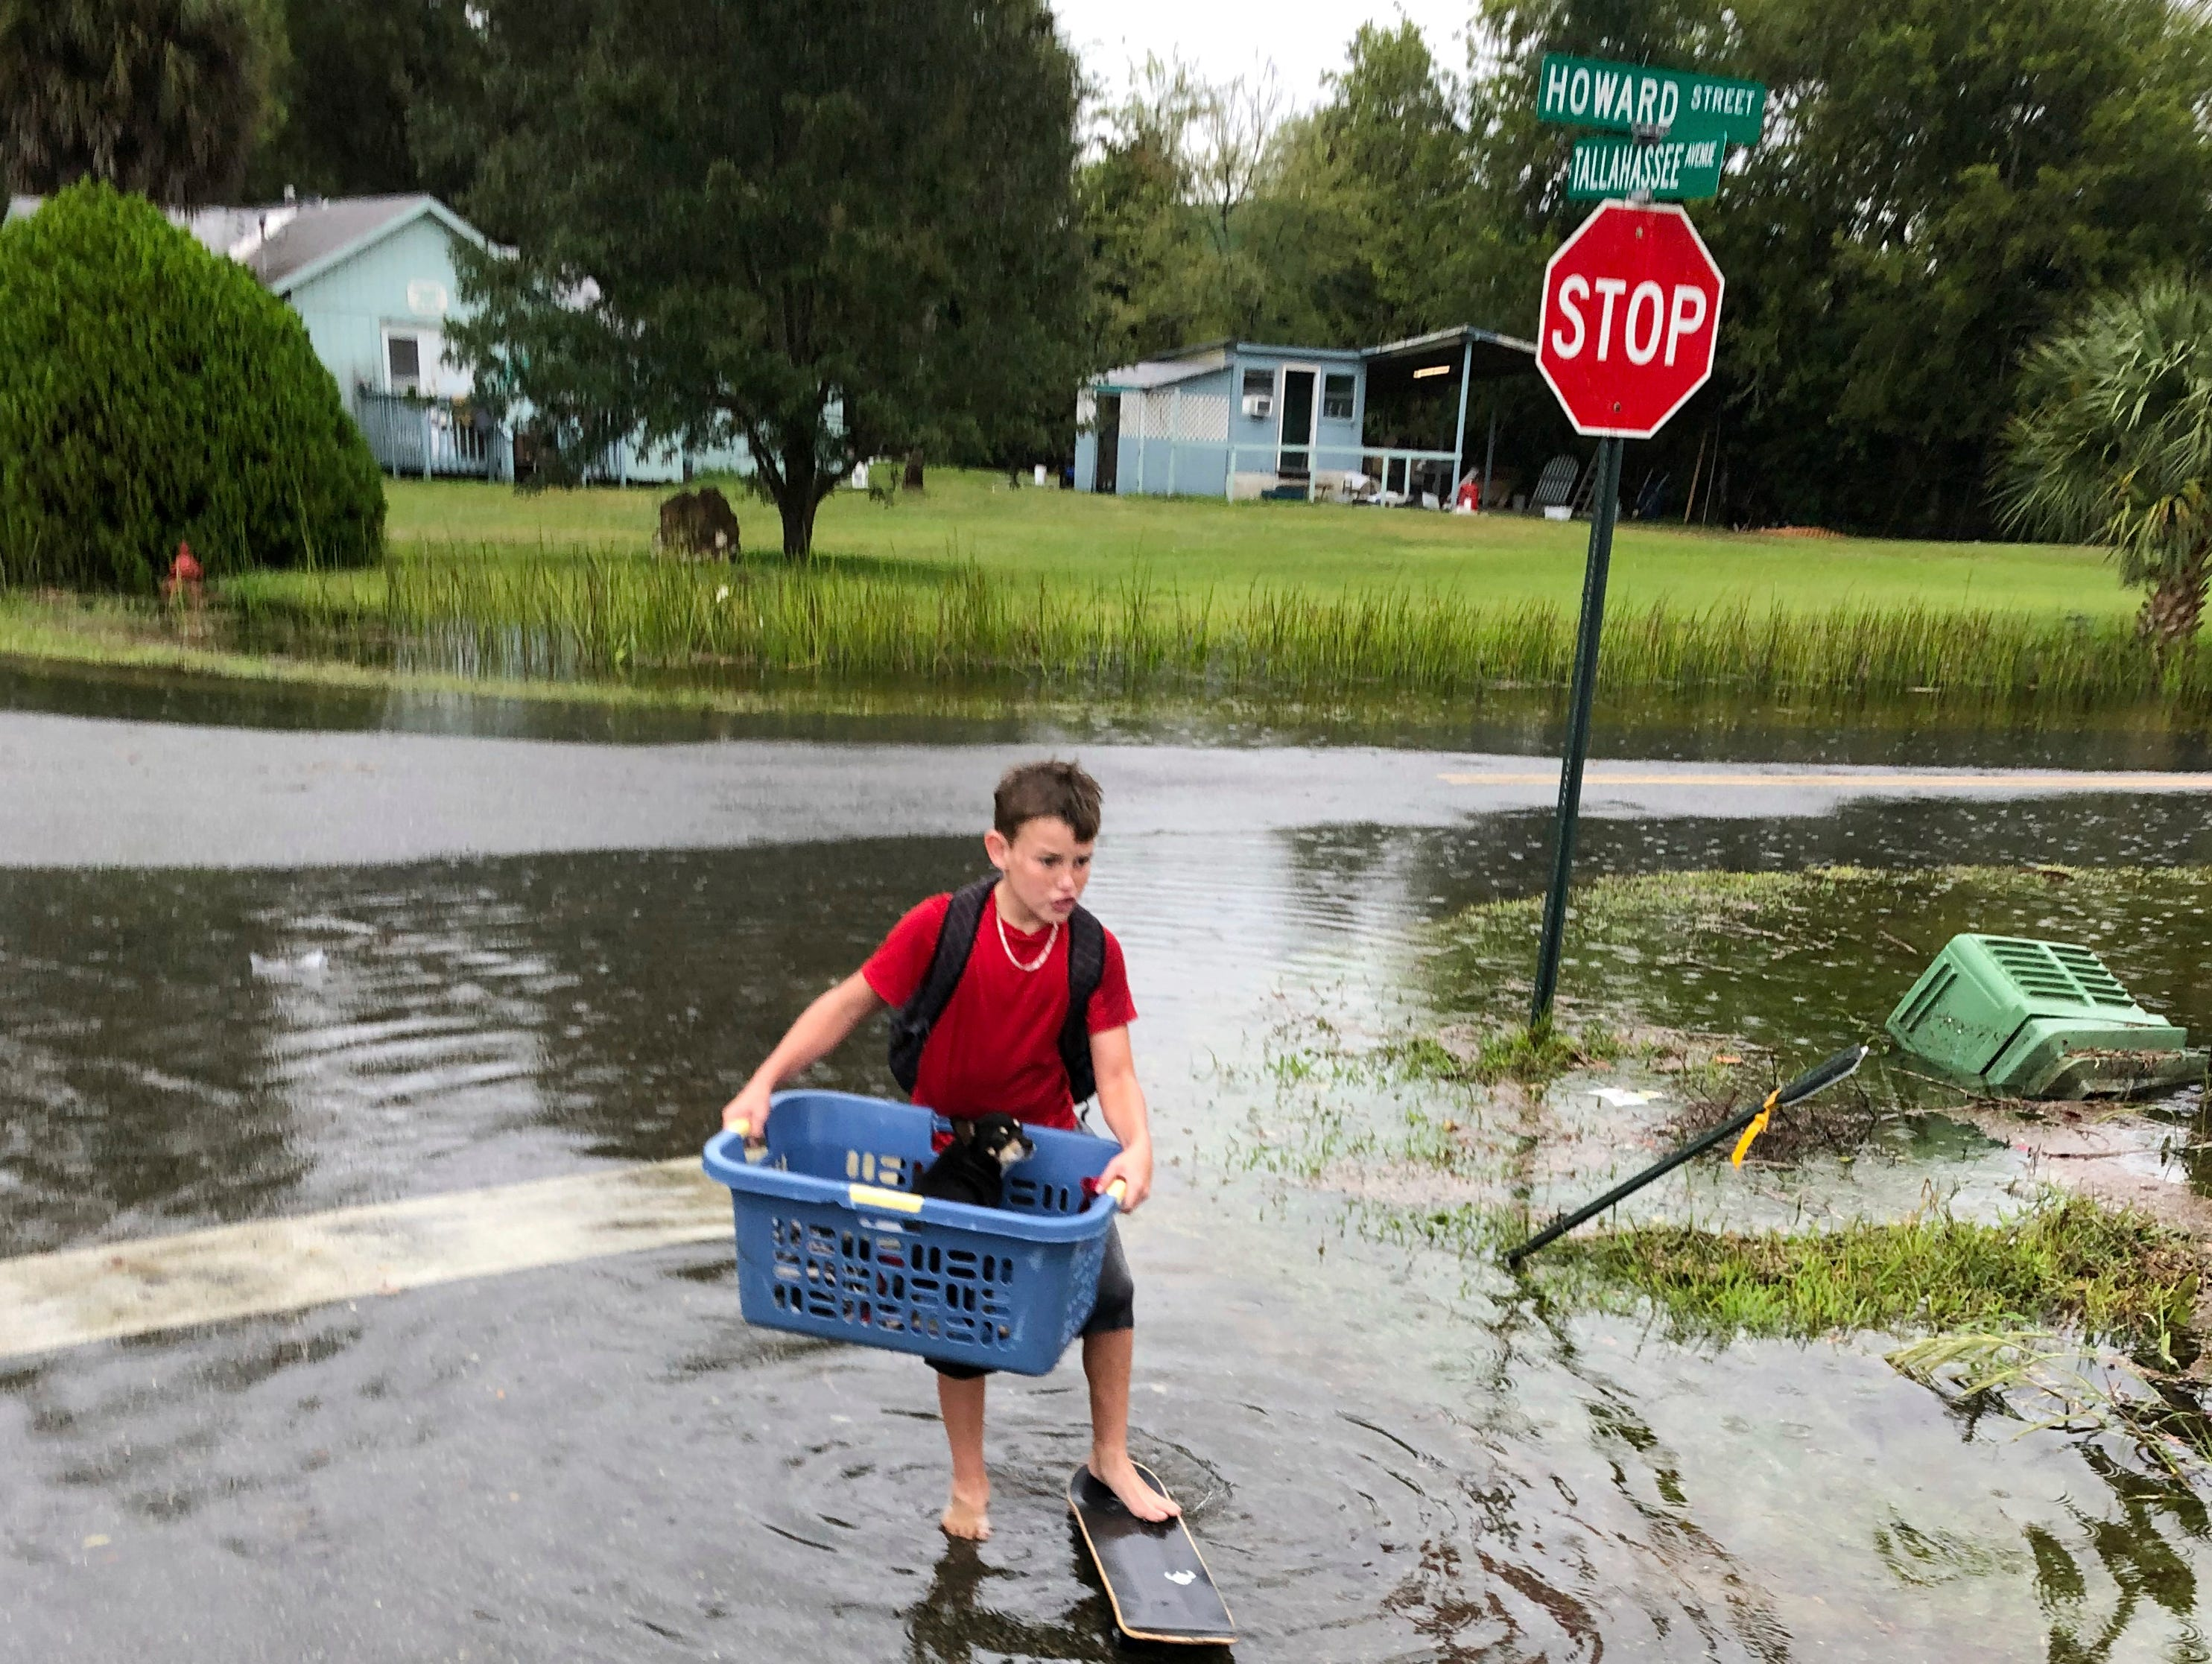 Jayden Morgan, 11, evacuates his home as water starts to flood his neighborhood in St. Marks, Fla, ahead of Hurricane Michael. Gaining fury with every passing hour, Hurricane Michael closed in Wednesday on the Florida Panhandle with potentially catastrophic winds of 150 mph, the most powerful storm on record ever to menace the stretch of fishing towns, military bases and spring-break beaches.